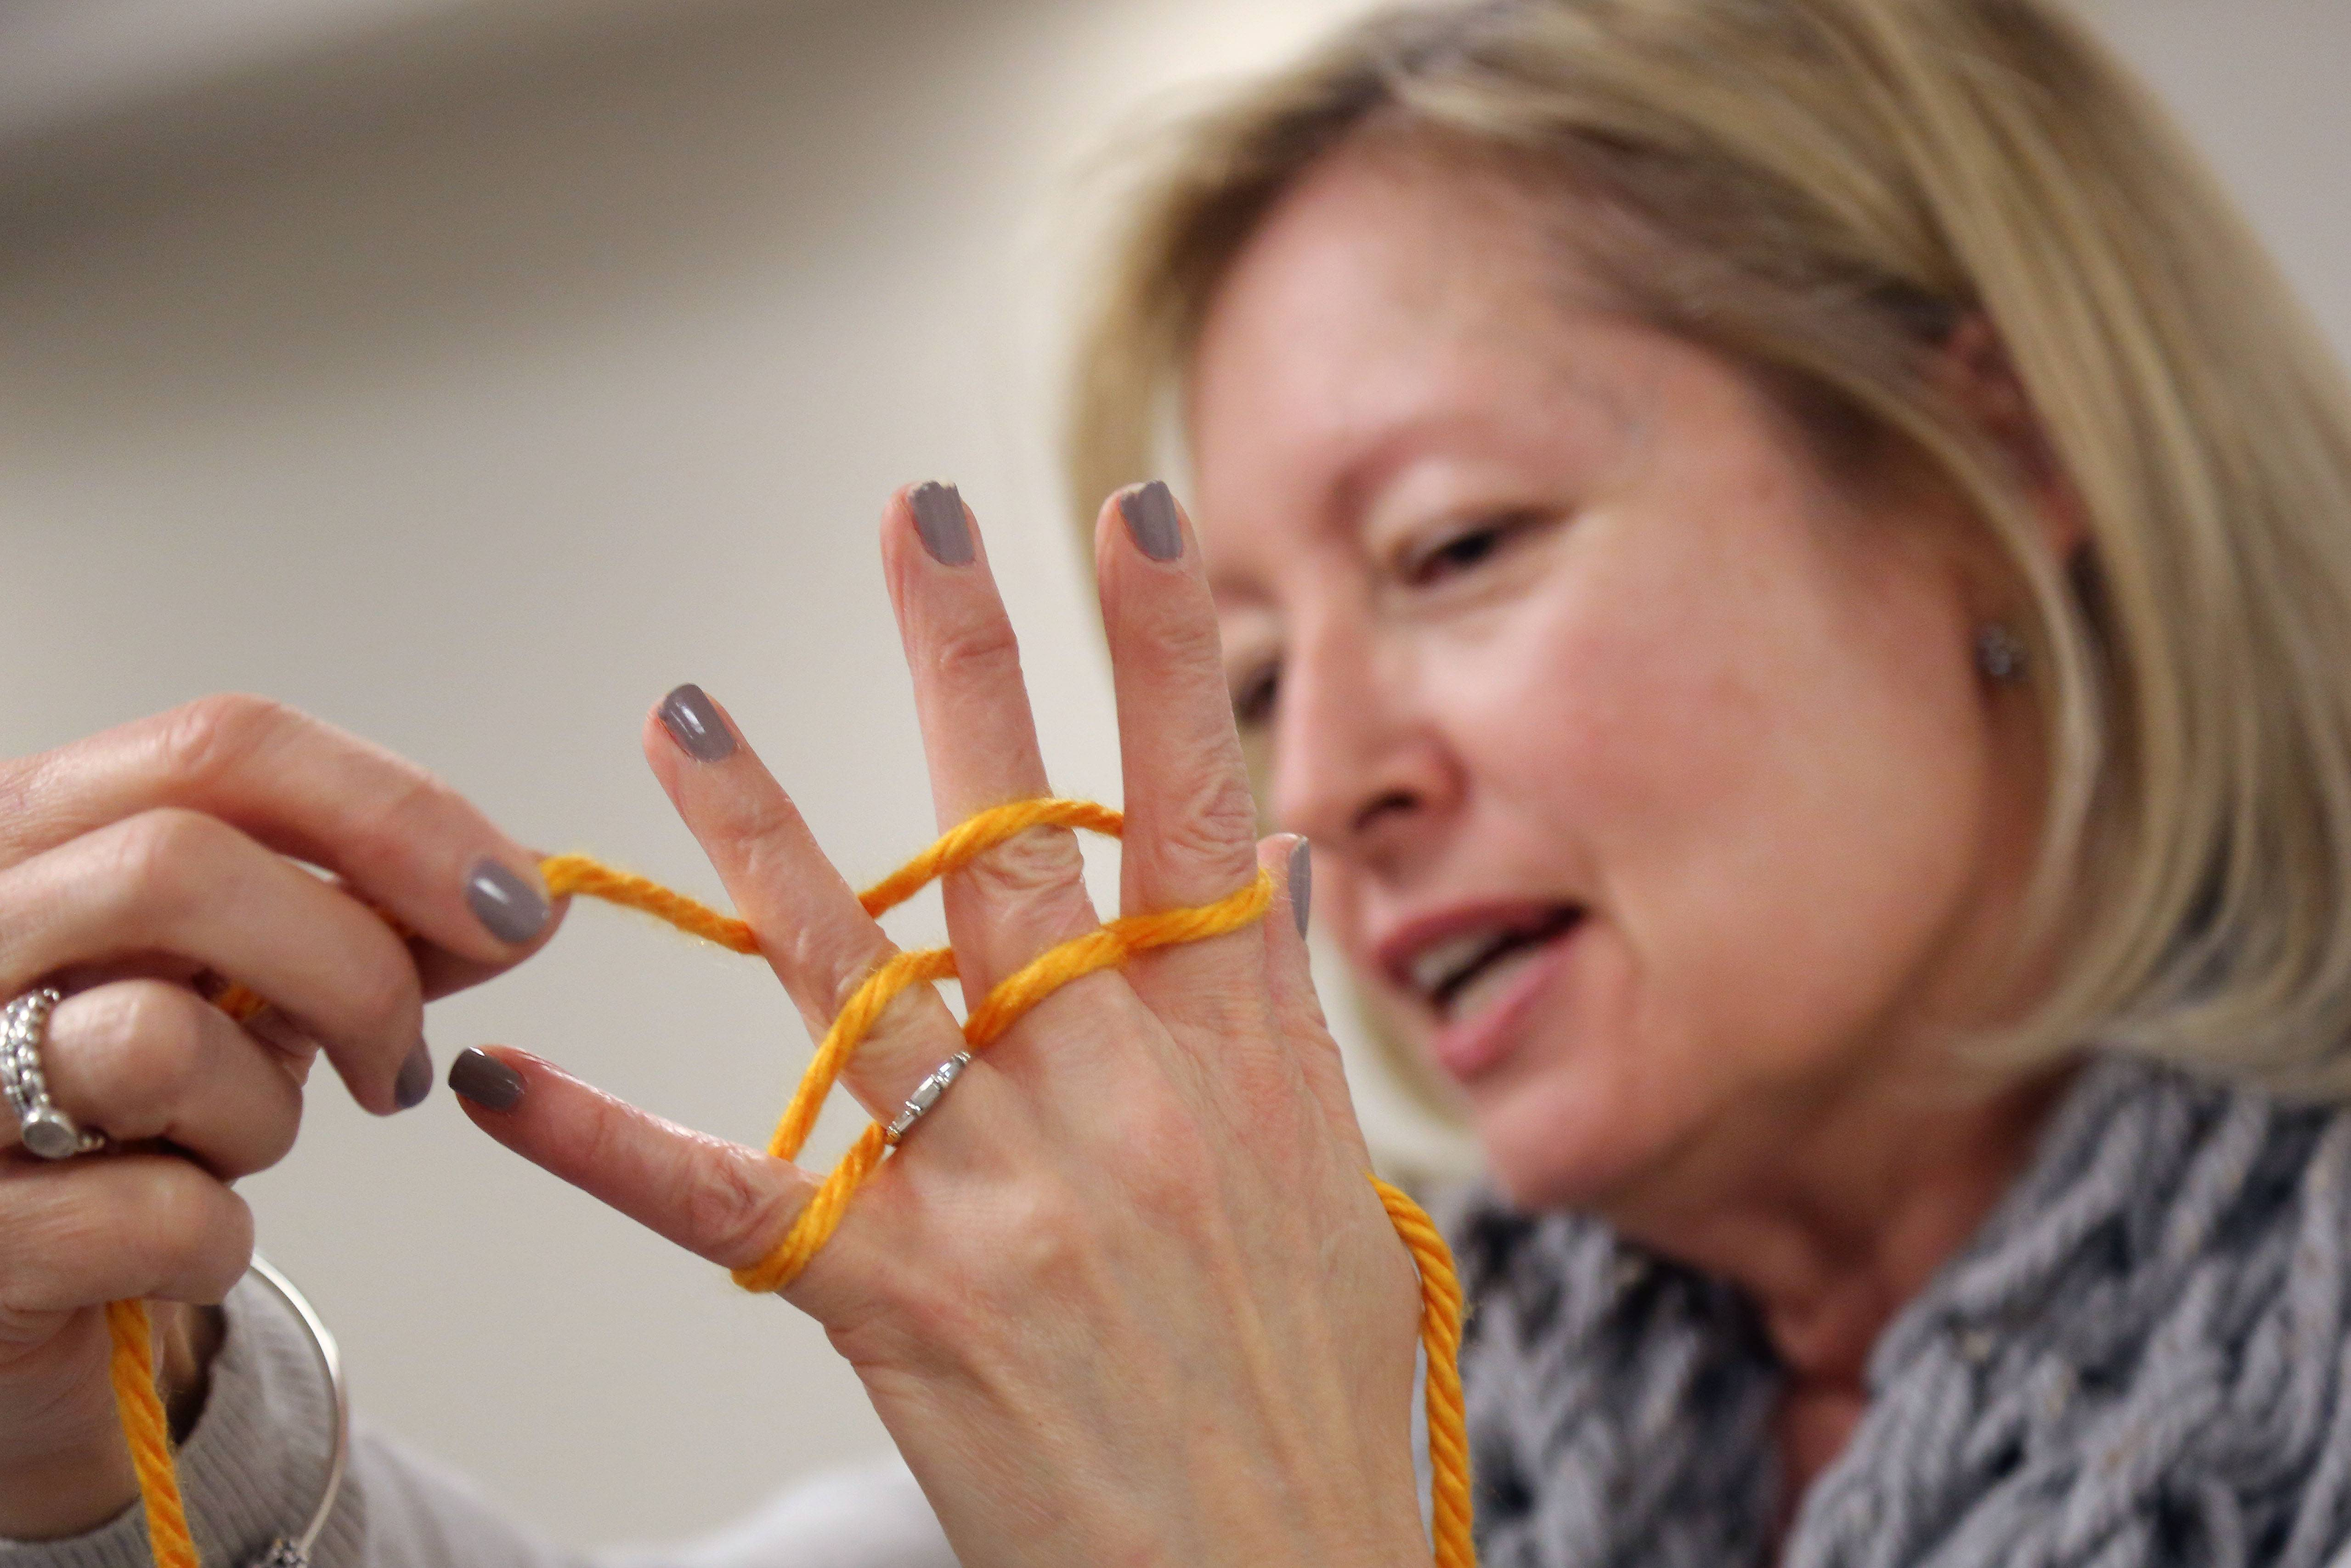 Children's Librarian Diana Trinkleback demonstrates a knitting technique using her fingers during a knitting program for kids in grades 3-5 at Cook Park Library.